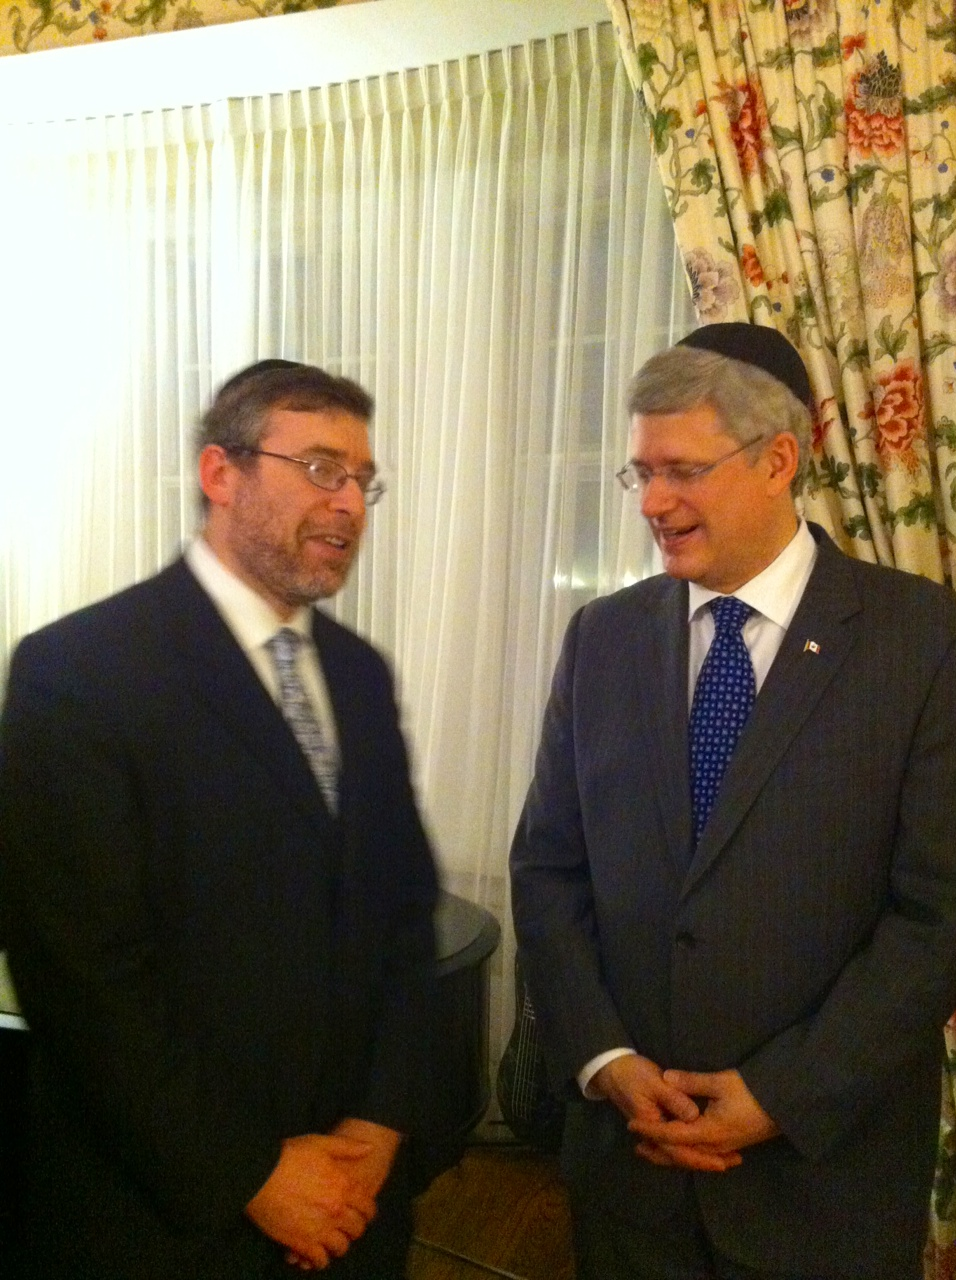 Rabbi Korobkin with Stephen Harper at 24 Sussex Drive for a Channukah party for Jewish leaders.